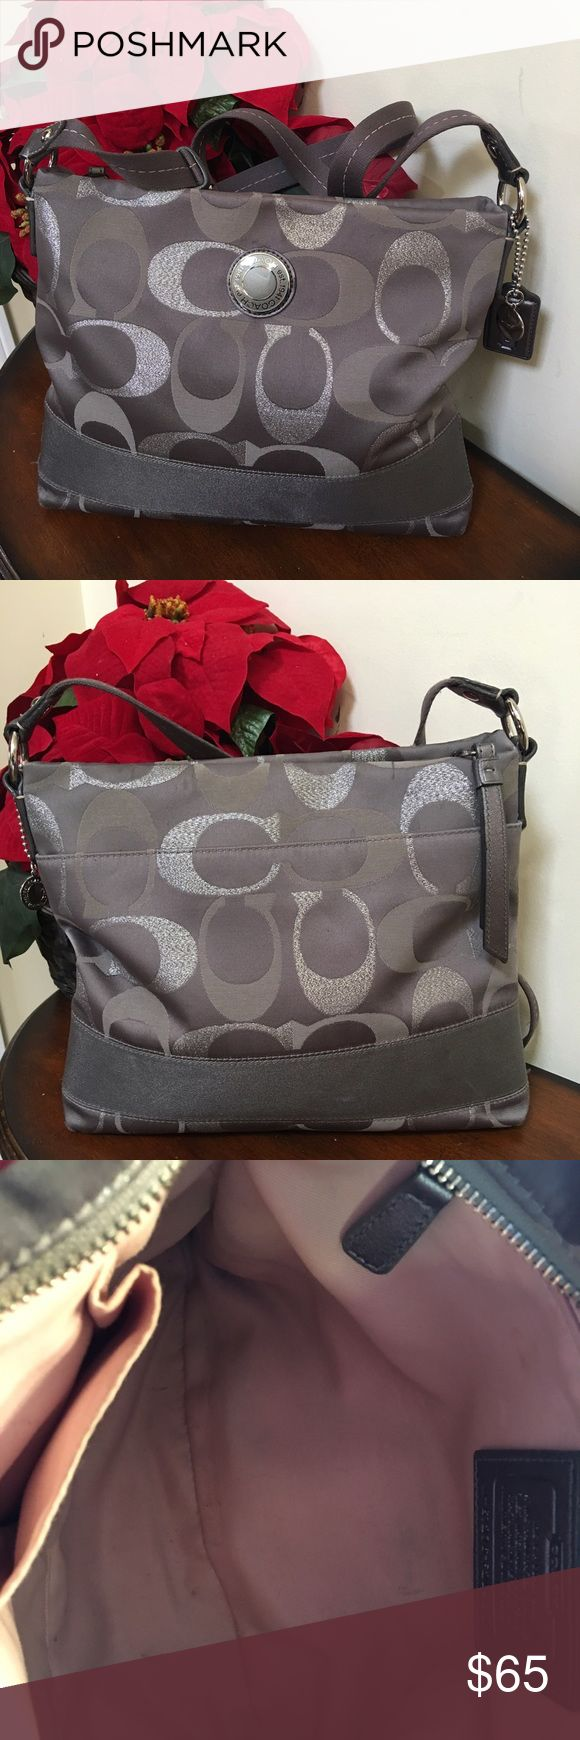 🌺🎀Coach Grey Large Crossbody Purse🌺🎀 🌺🎀Coach Large Grey Crossbody Purse is in very good used condition and very versatile and stylish to wear with a variety of outfits 🌺🎀 Coach Bags Crossbody Bags